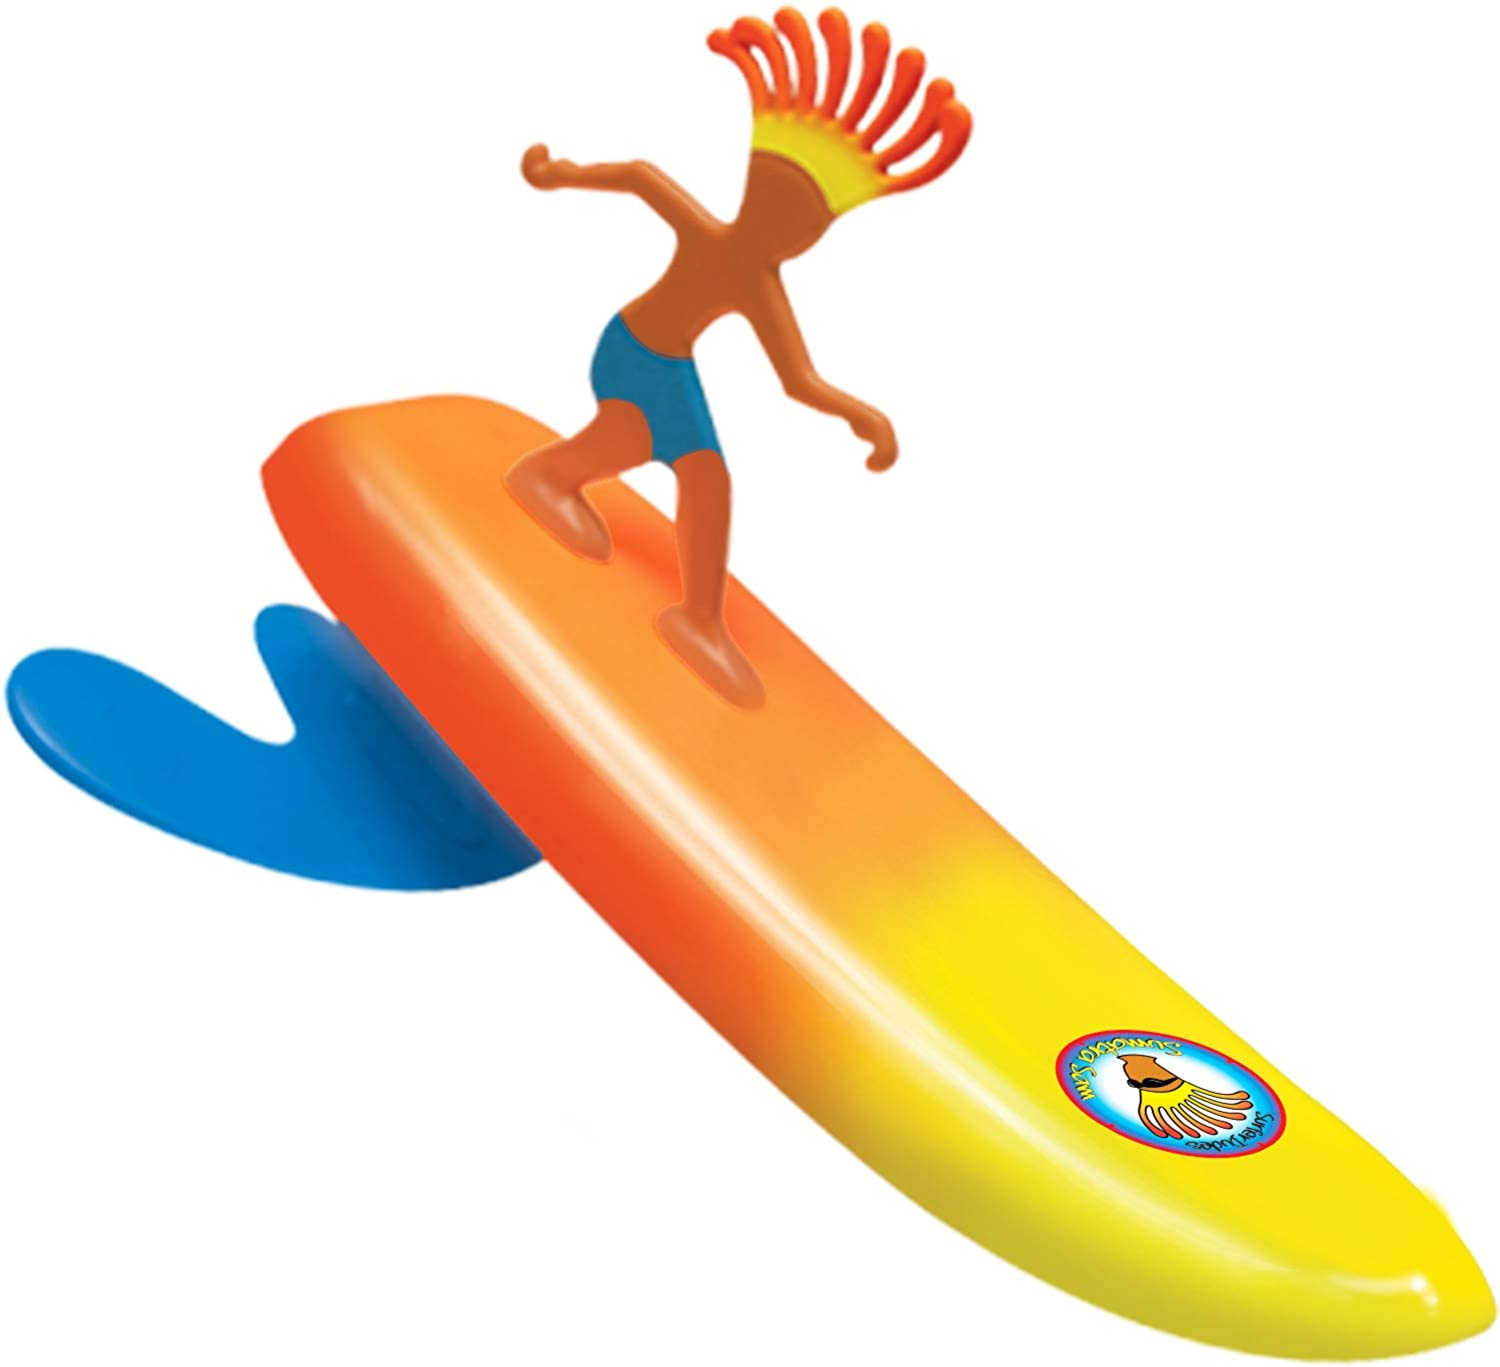 Surfer Dudes Wave Powered Mini-Surfer and Surfboard Toy